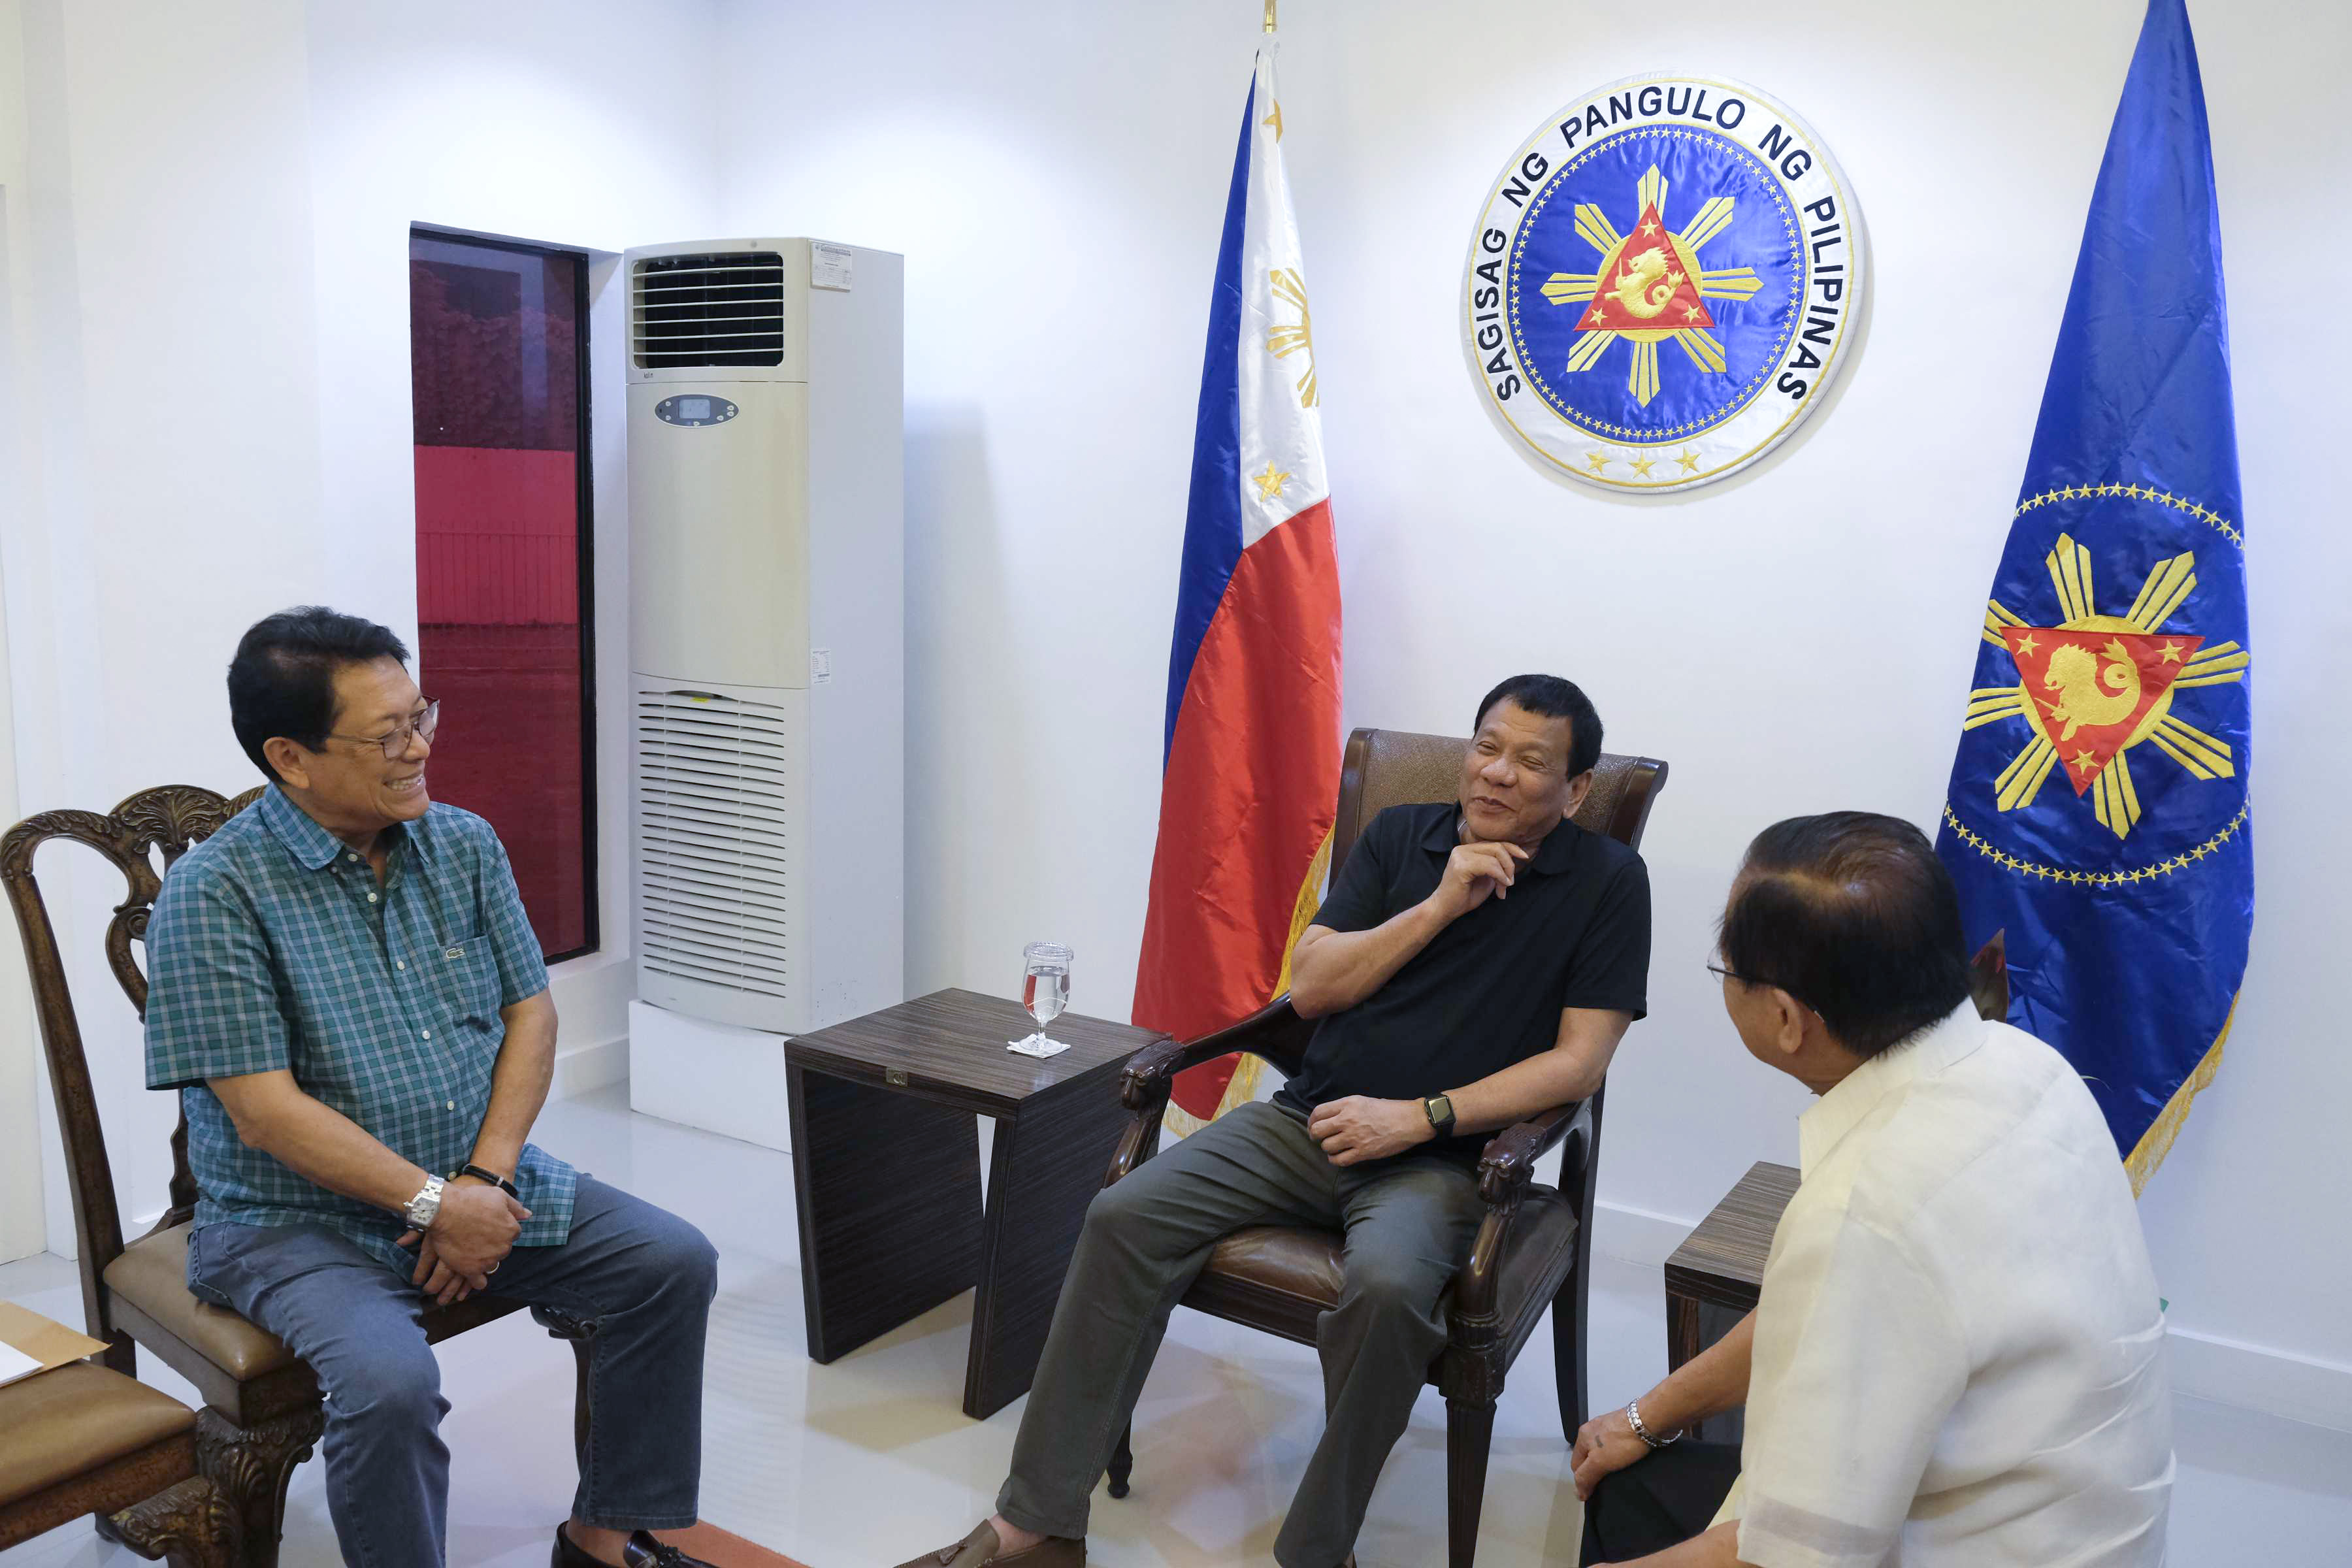 PREPARING TO TALK. President Rodrigo Duterte discusses peace talks with the Left with chief government negotiator Labor chief Silvestre Bello III and Presidential Peace Process Adviser Jesus Dureza at the Presidential Guest House in Davao City on March 27, 2017. Photo by Rene Lumawag/Presidential Photo